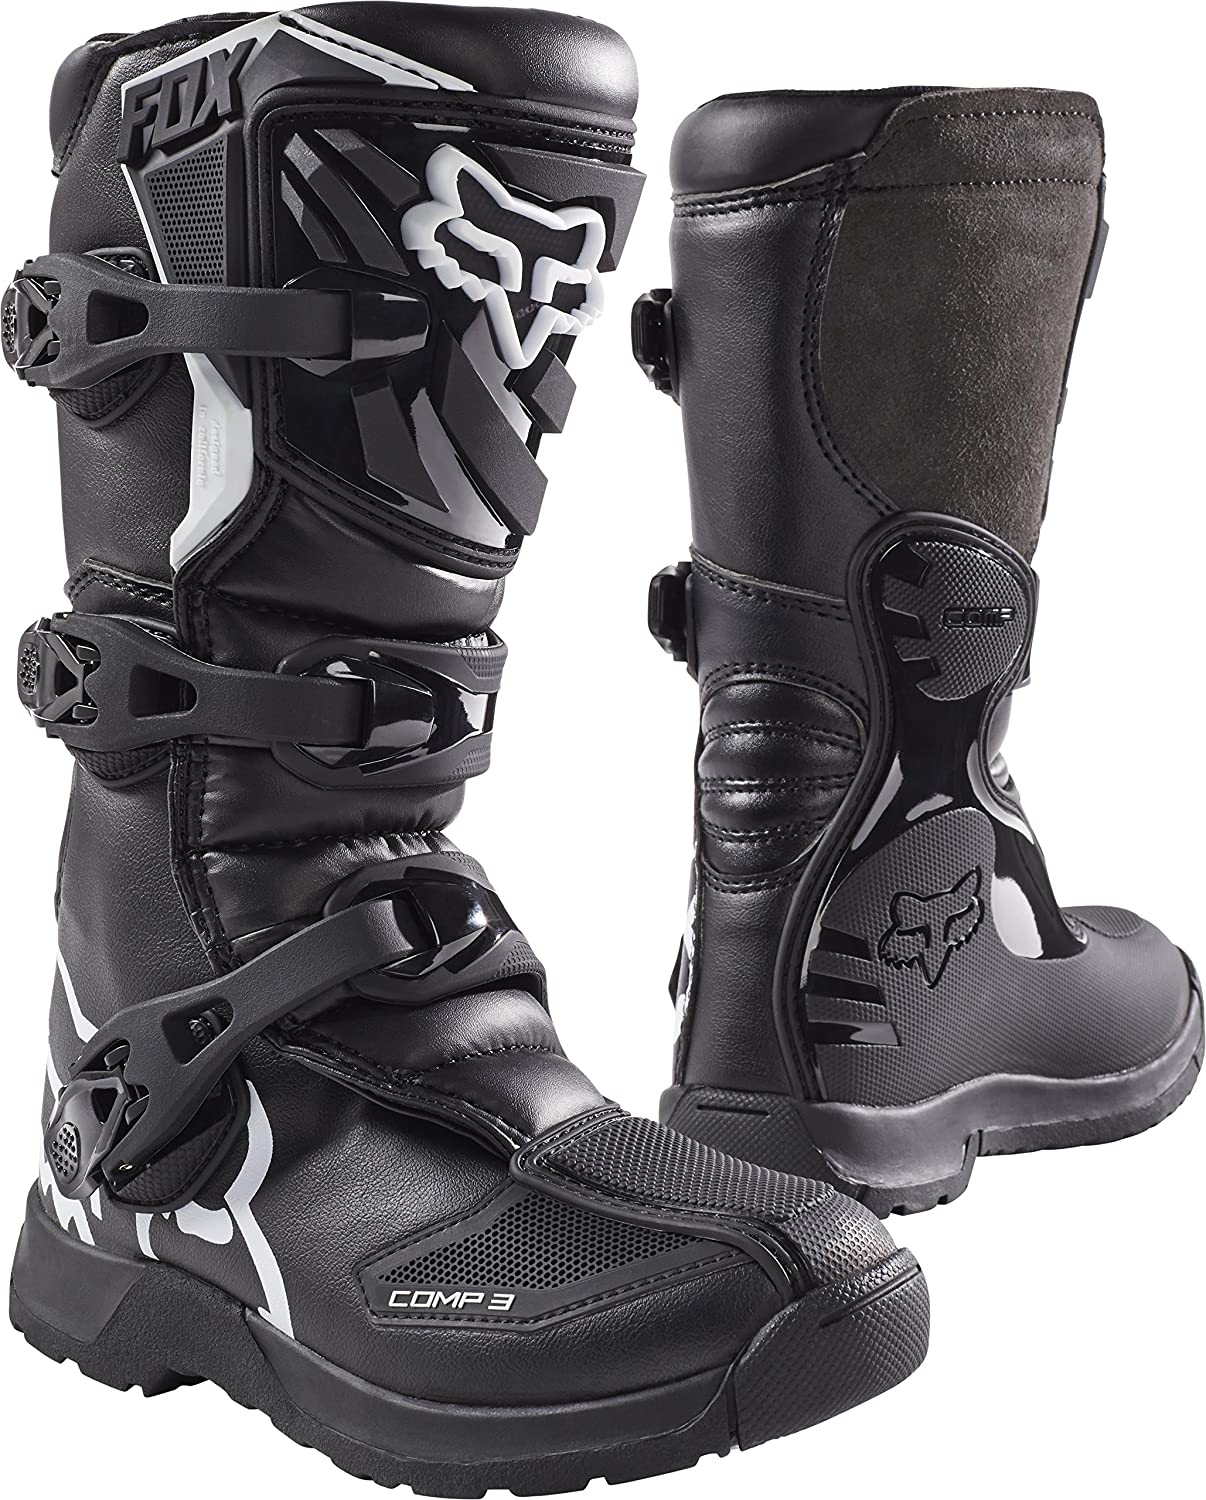 804a3078503 Fox Racing 2019 Youth Comp 3 Boots (6) (BOYS)